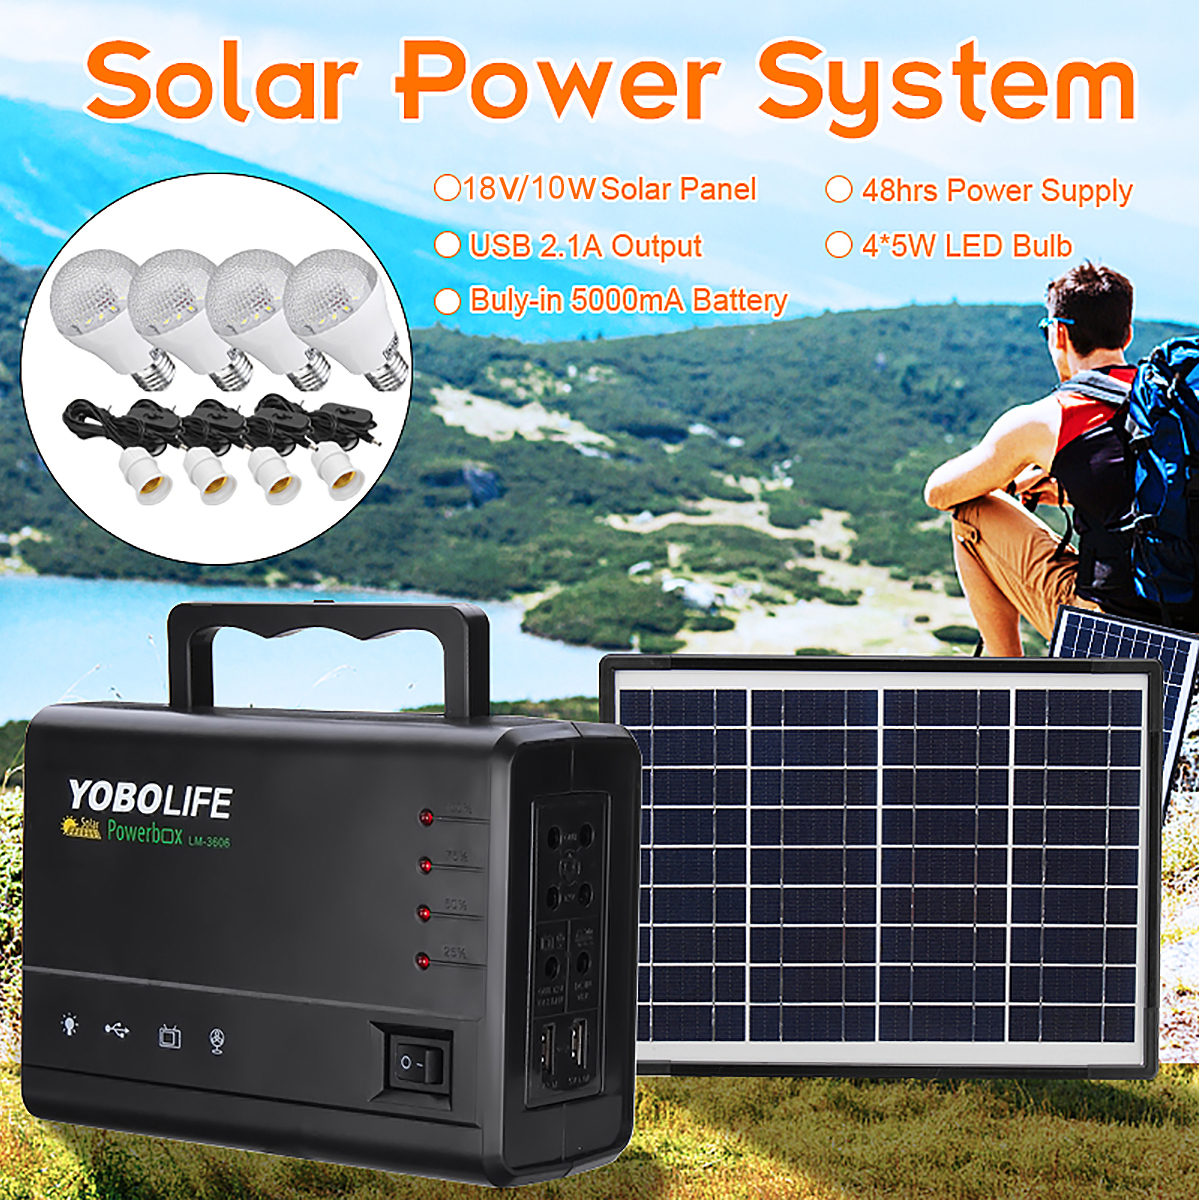 LED Light USB Charger 18V Solar Panel Power Storage Generator Home System Kit Rechargeable Sealed Lead acid Battery ABS+PC 10W